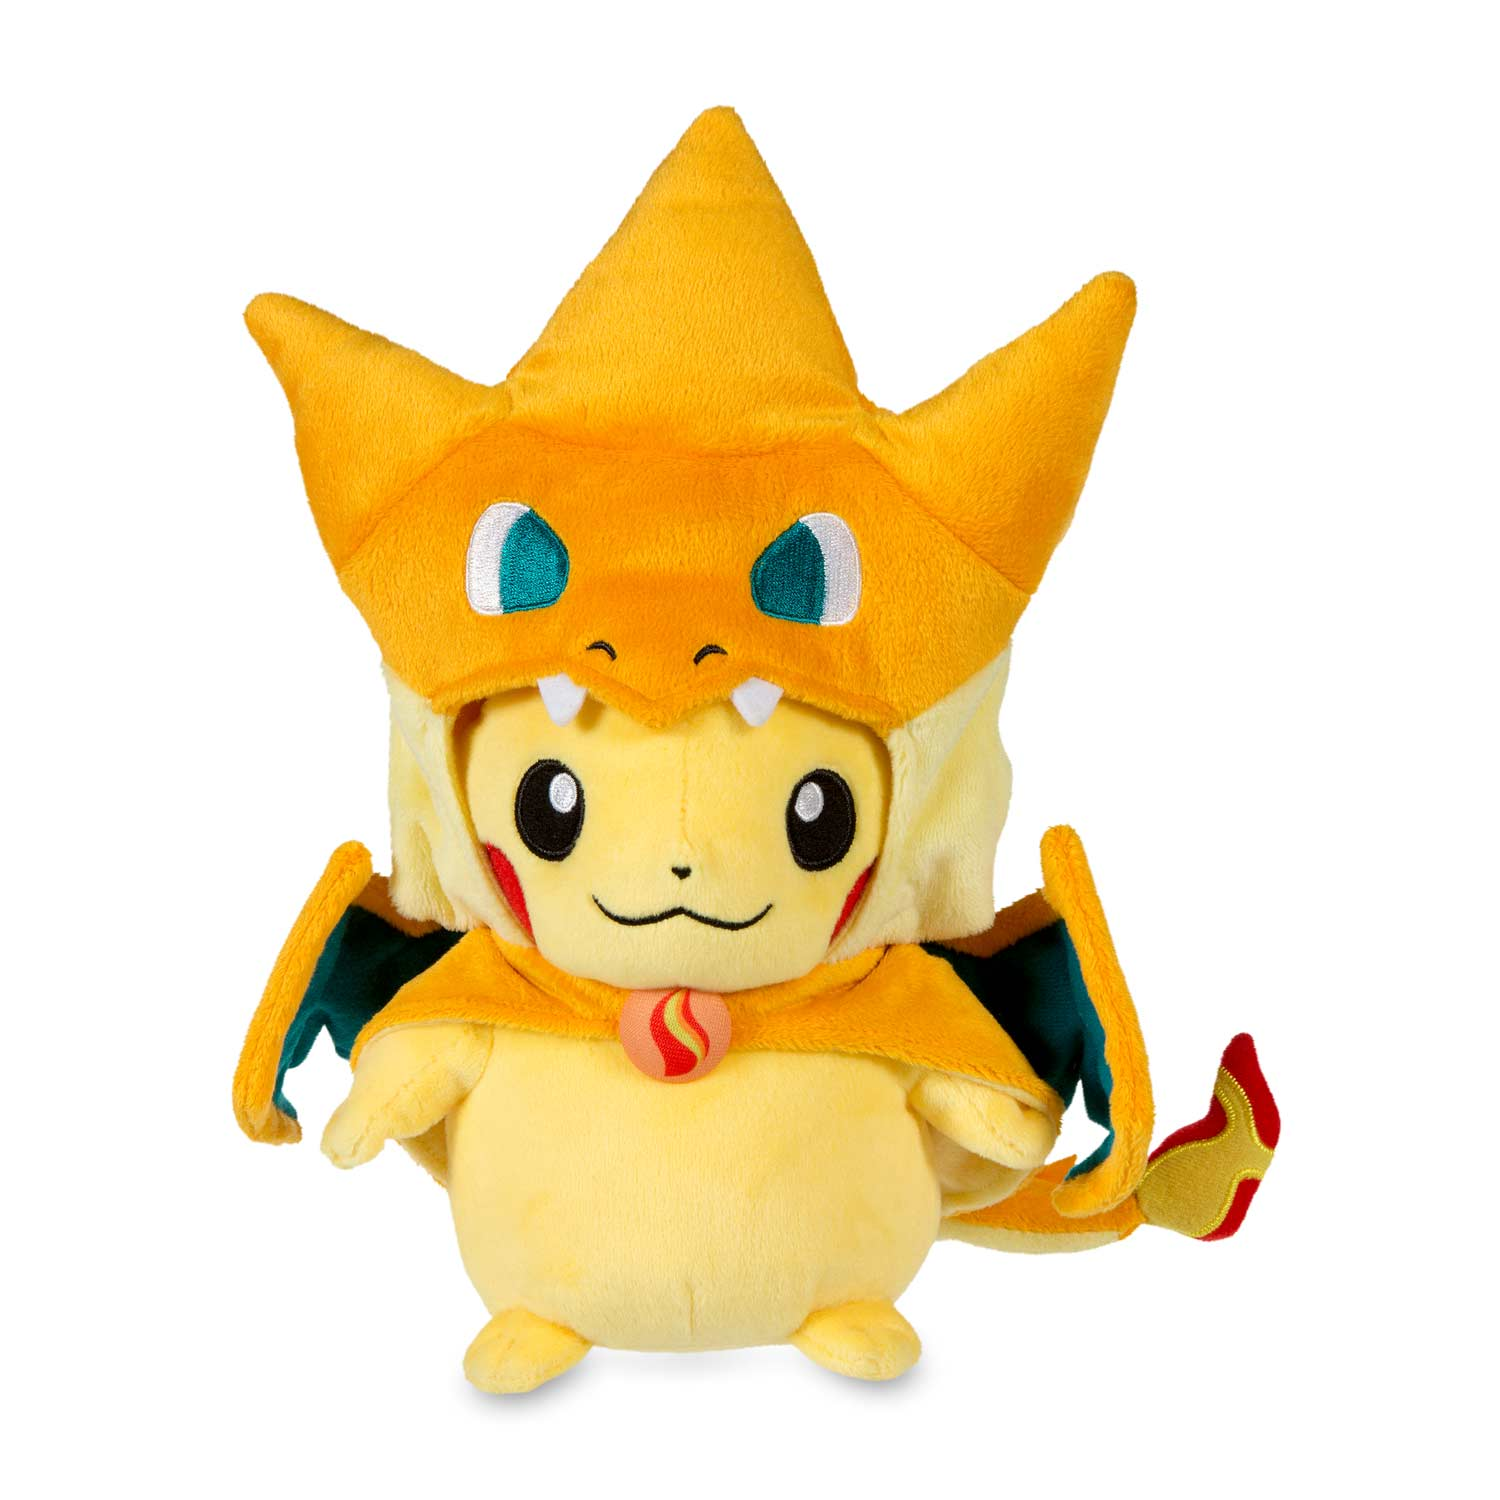 Mega Charizard Y Costume Pikachu Poke Plush Pokemon Center Original